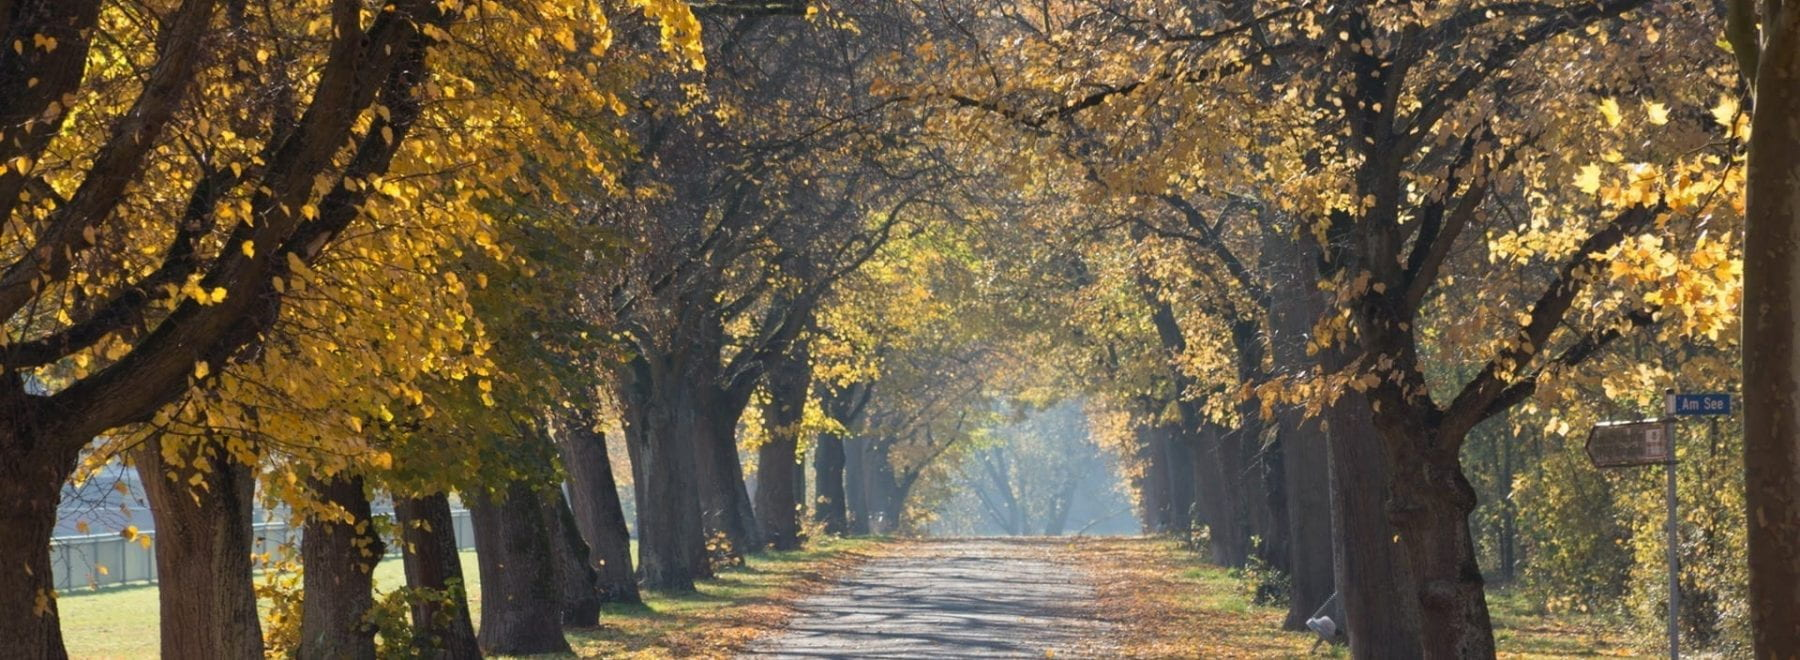 A pathway surrounded by trees in autumn.